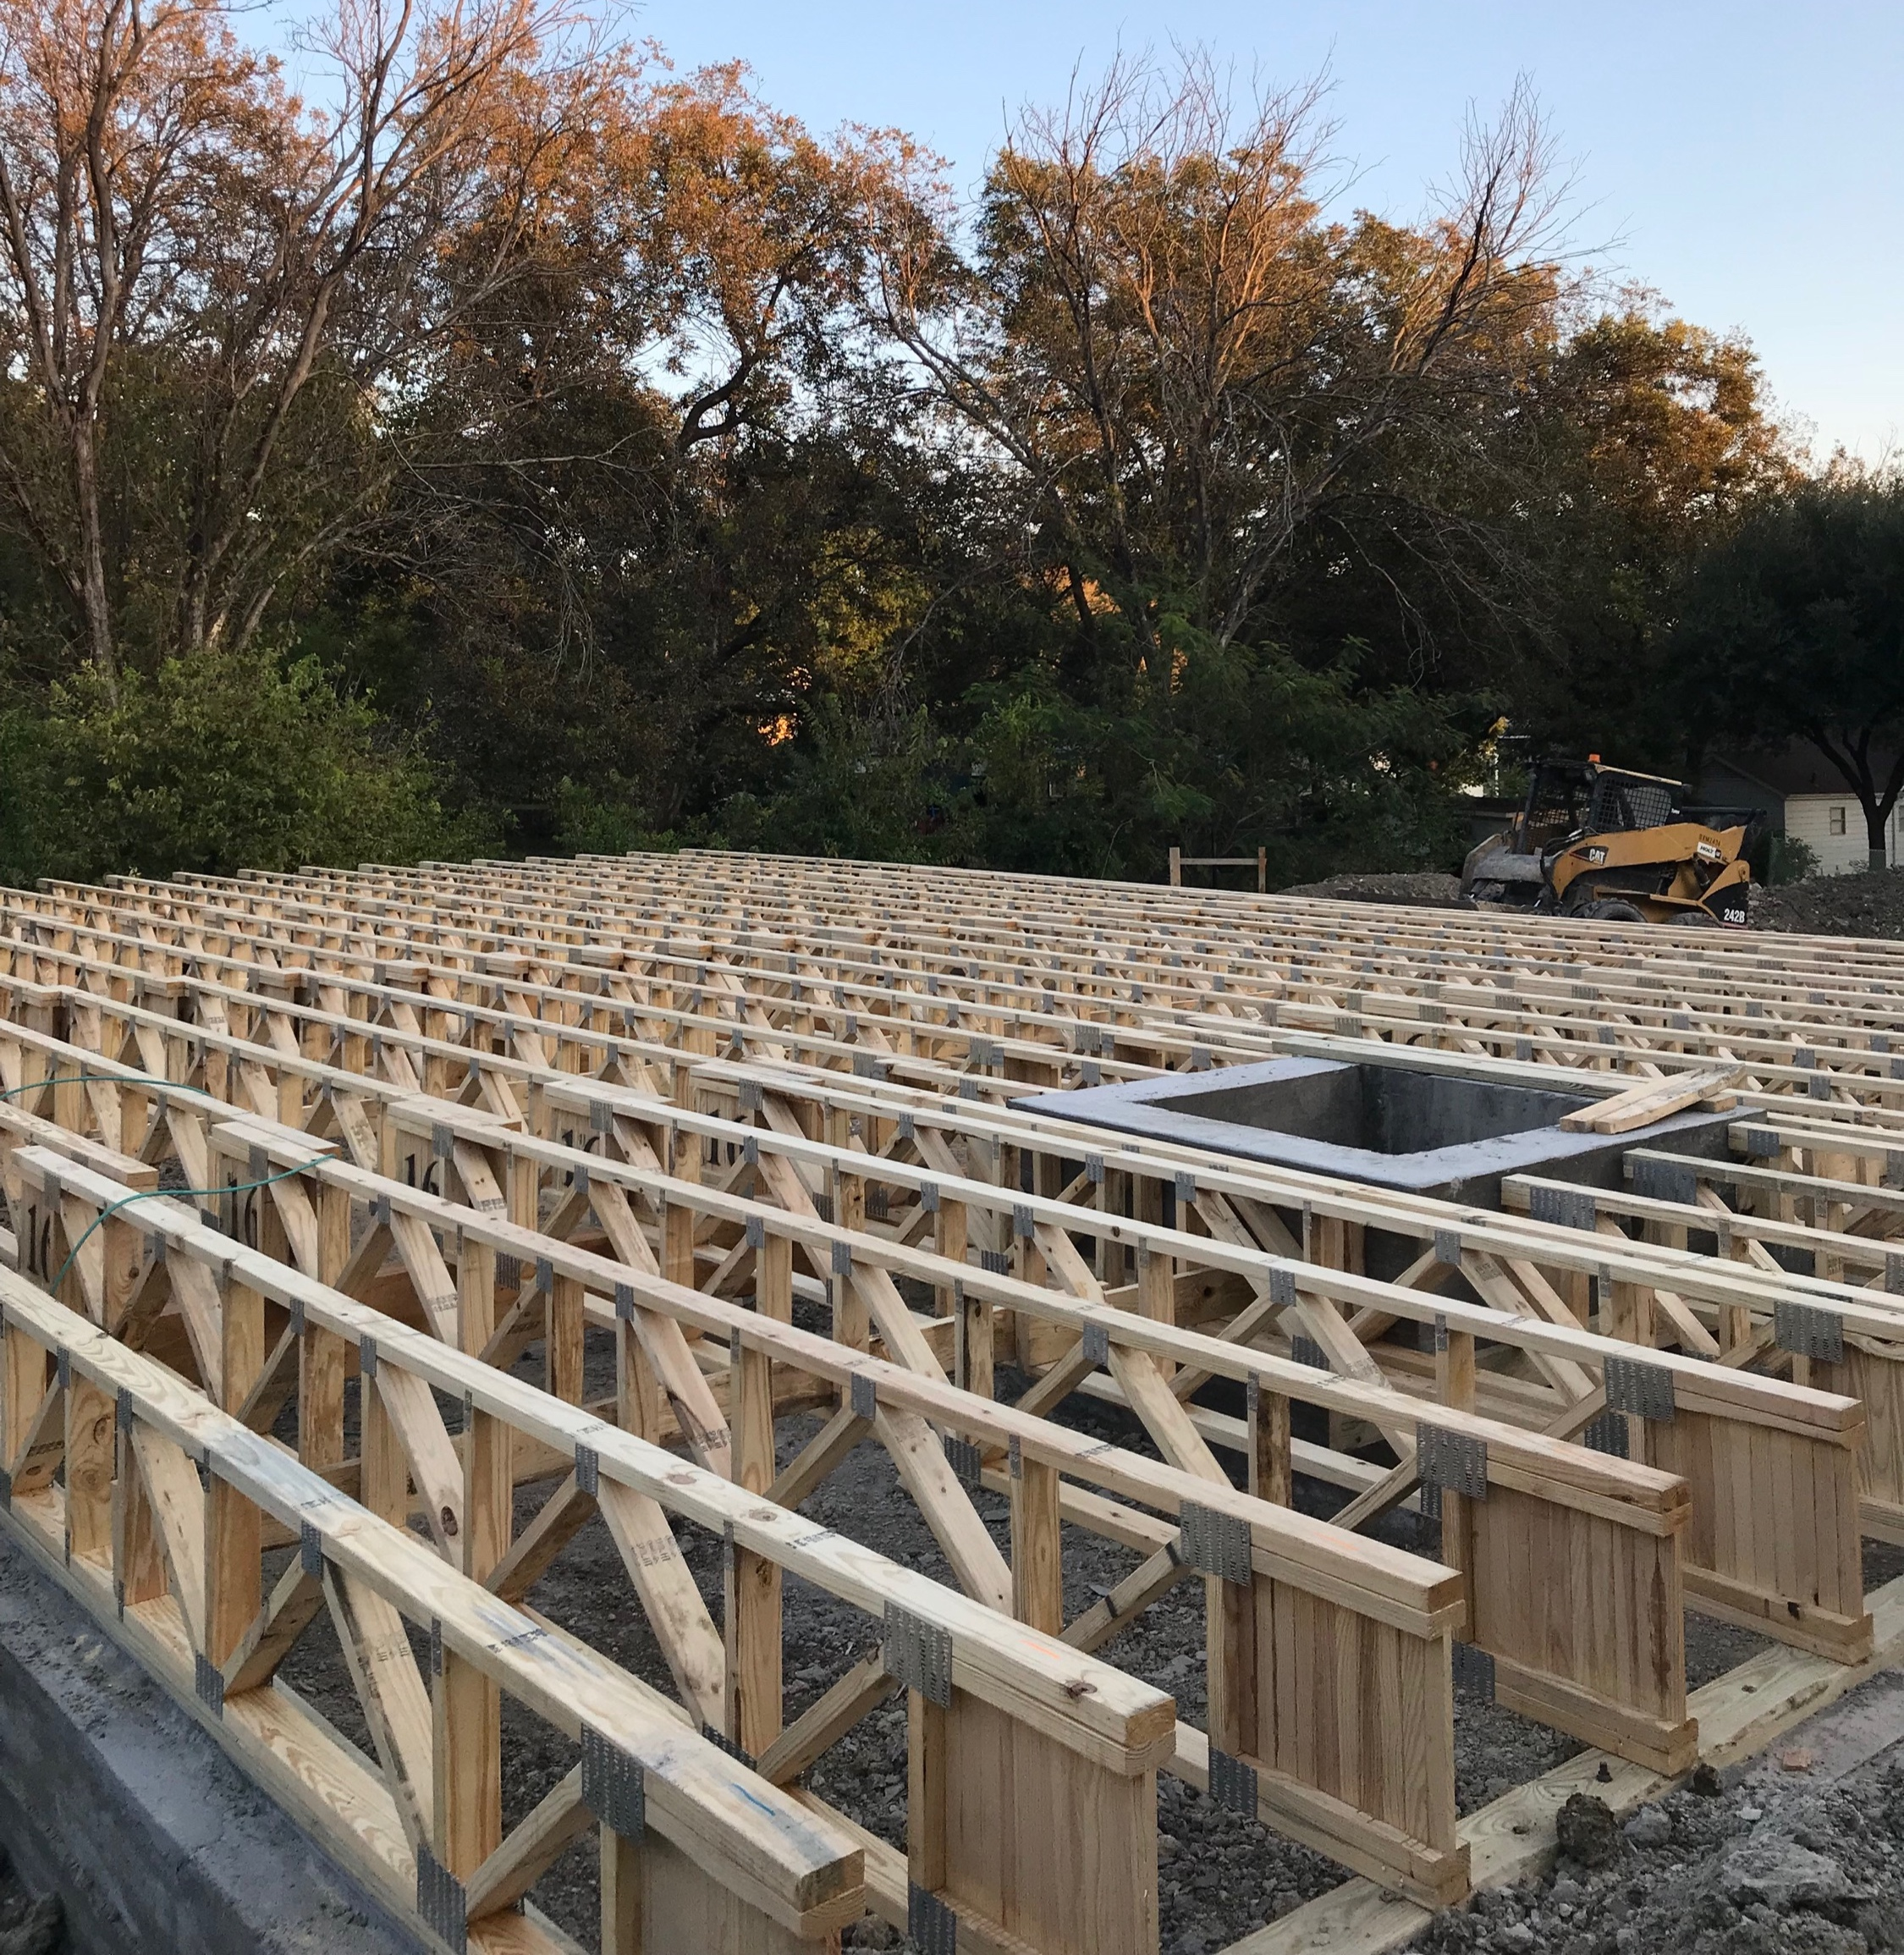 No walls or roof? Yep, it's Phase 2 of the new home build process!